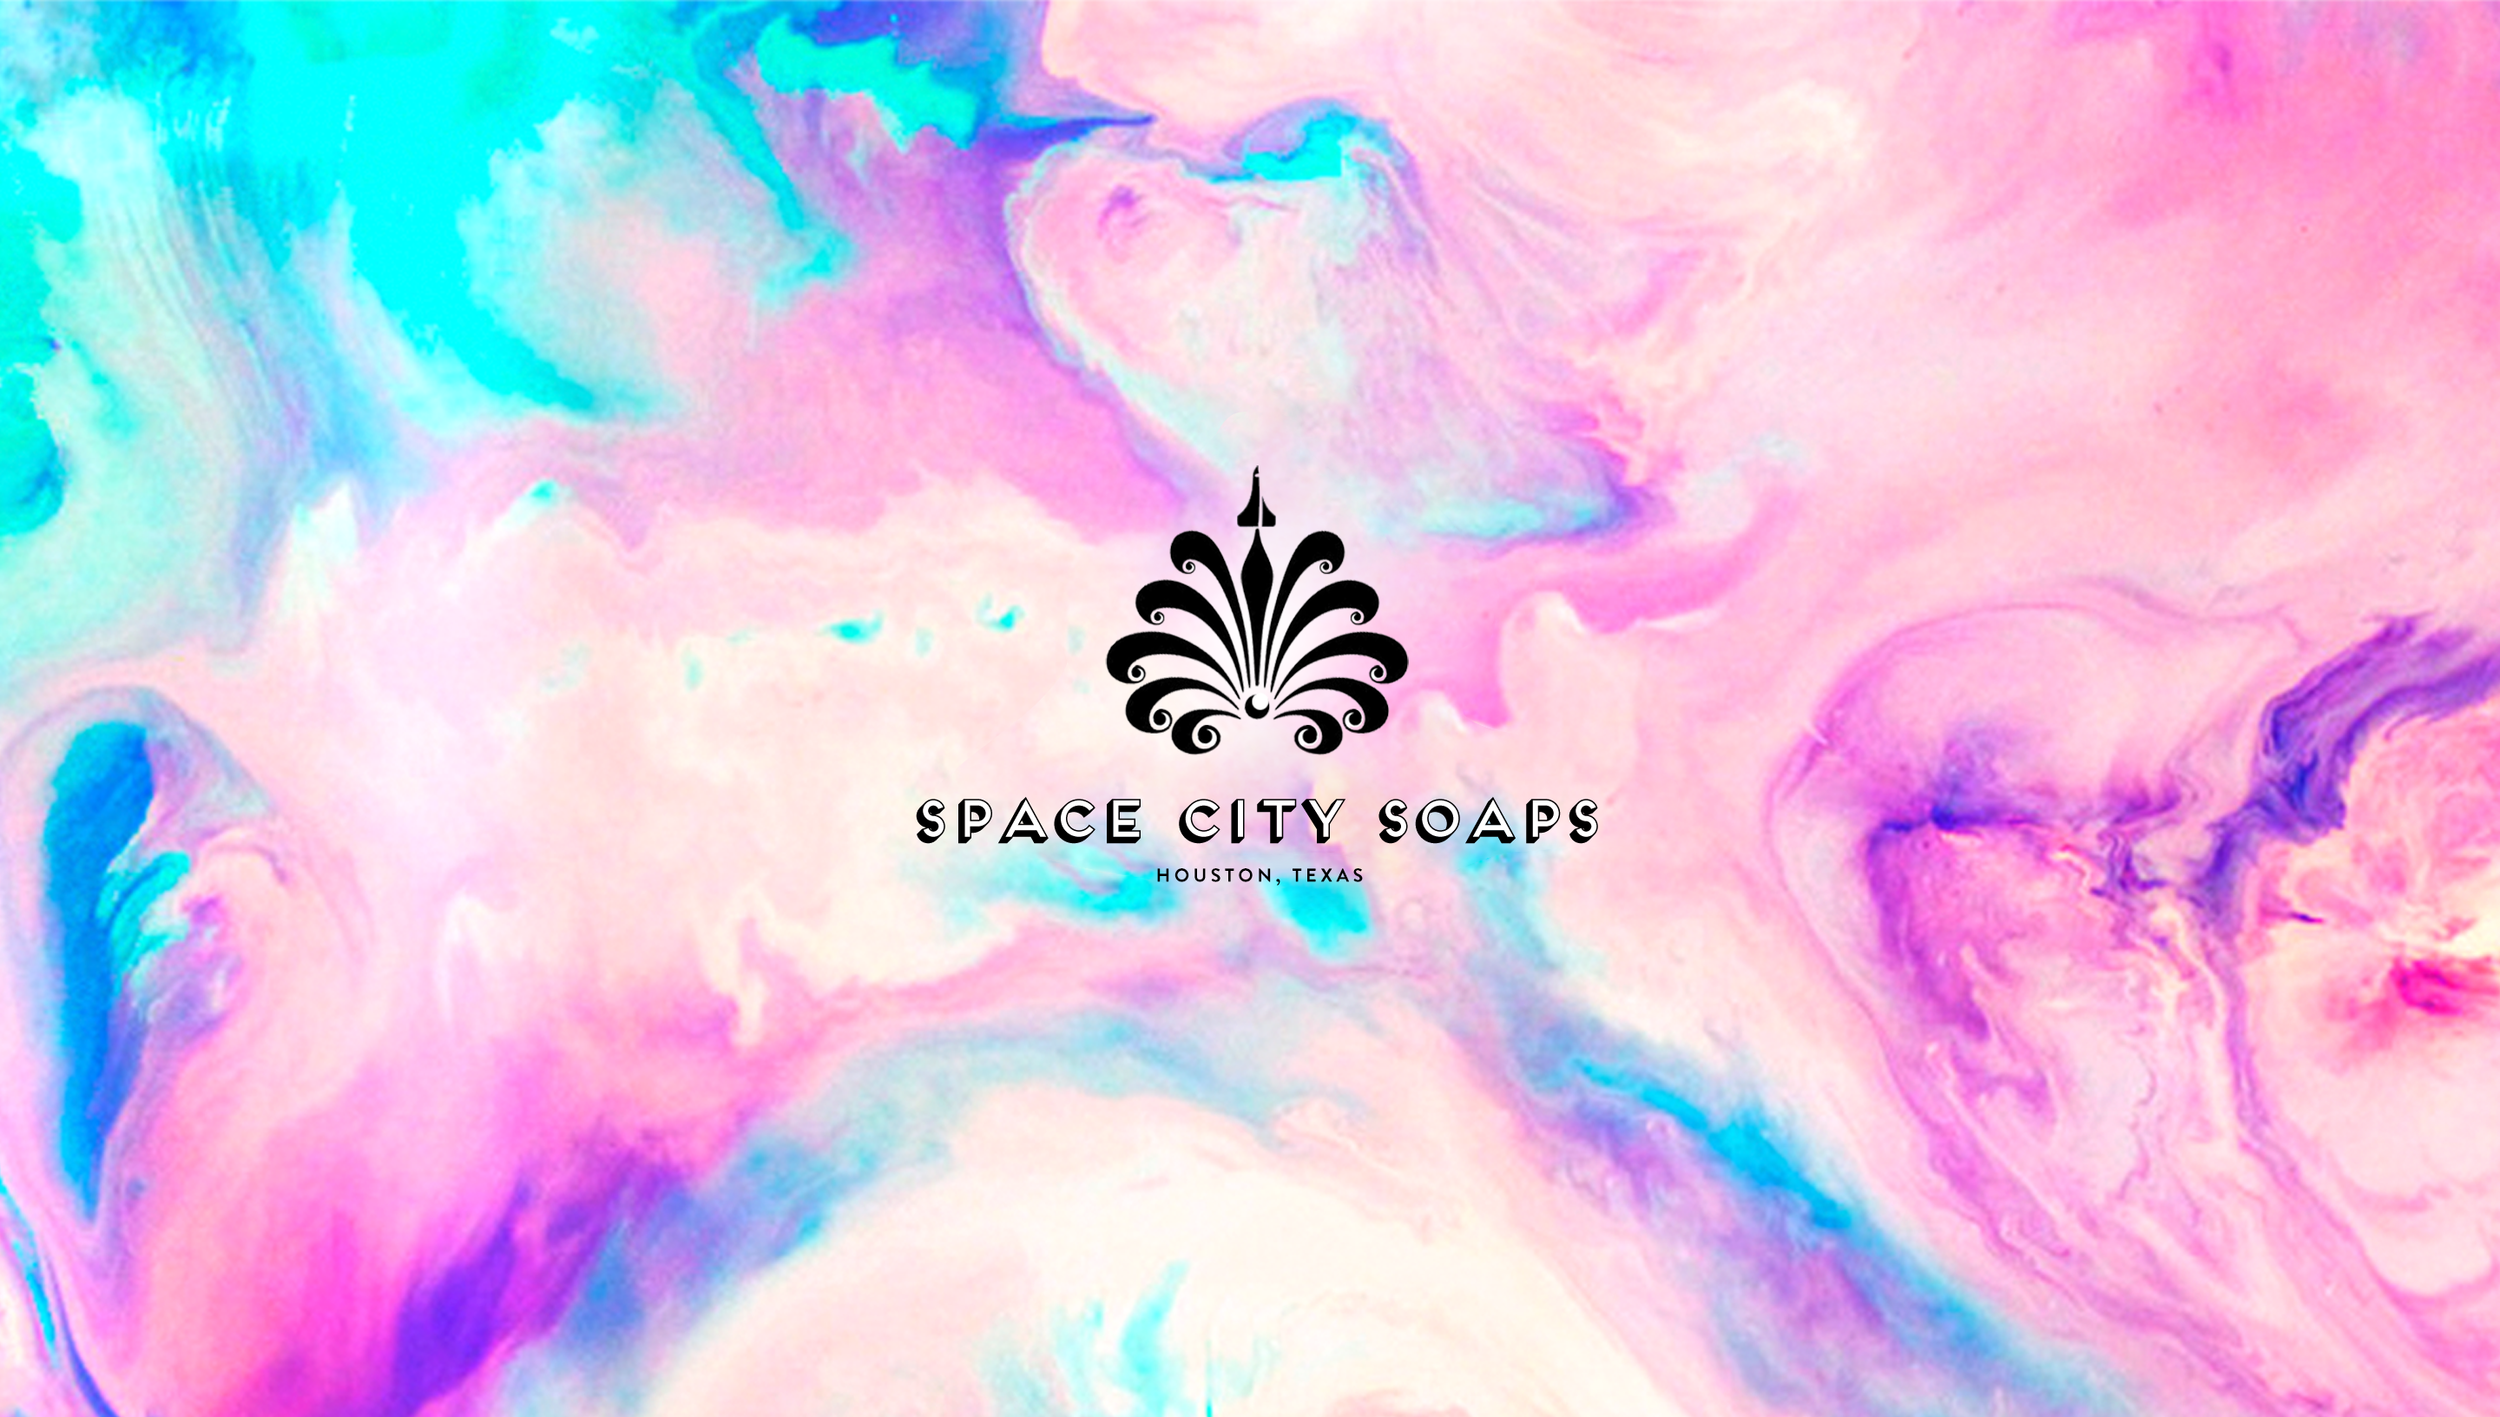 Space City Soaps Design by Phoebe Seward